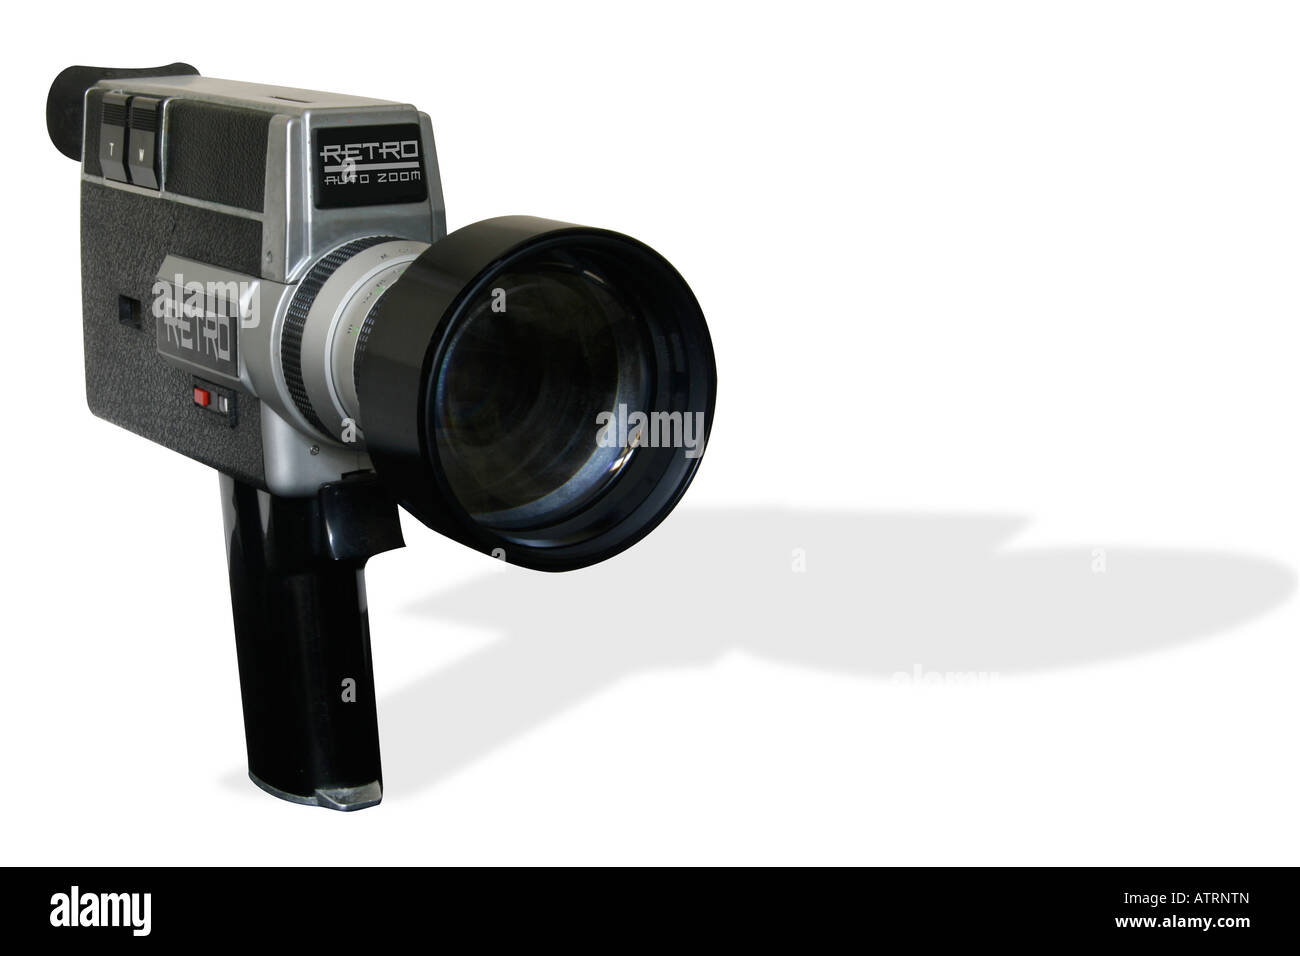 Retro Super 8 film Cine Camera Stock Photo: 16380404 - Alamy